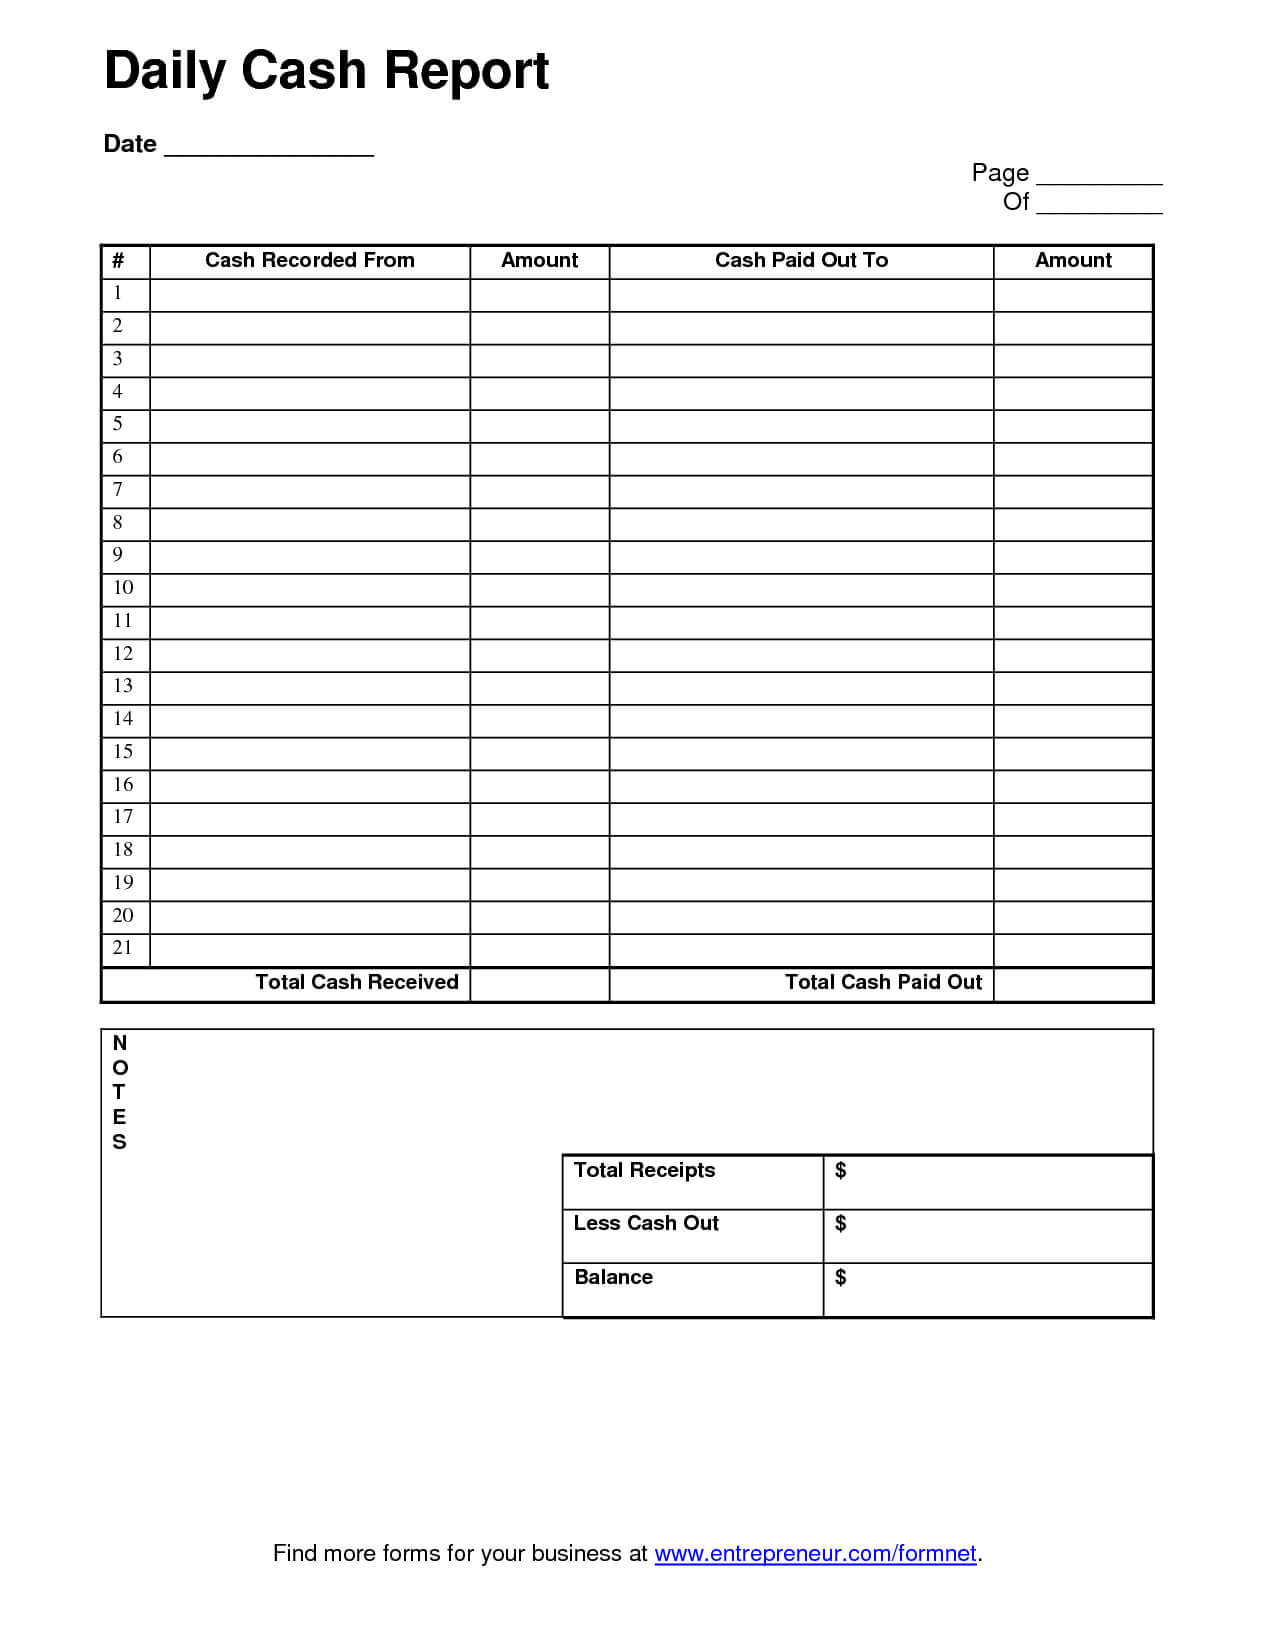 Daily Cash Sheet Template | Daily Report Template Regarding Daily Report Sheet Template